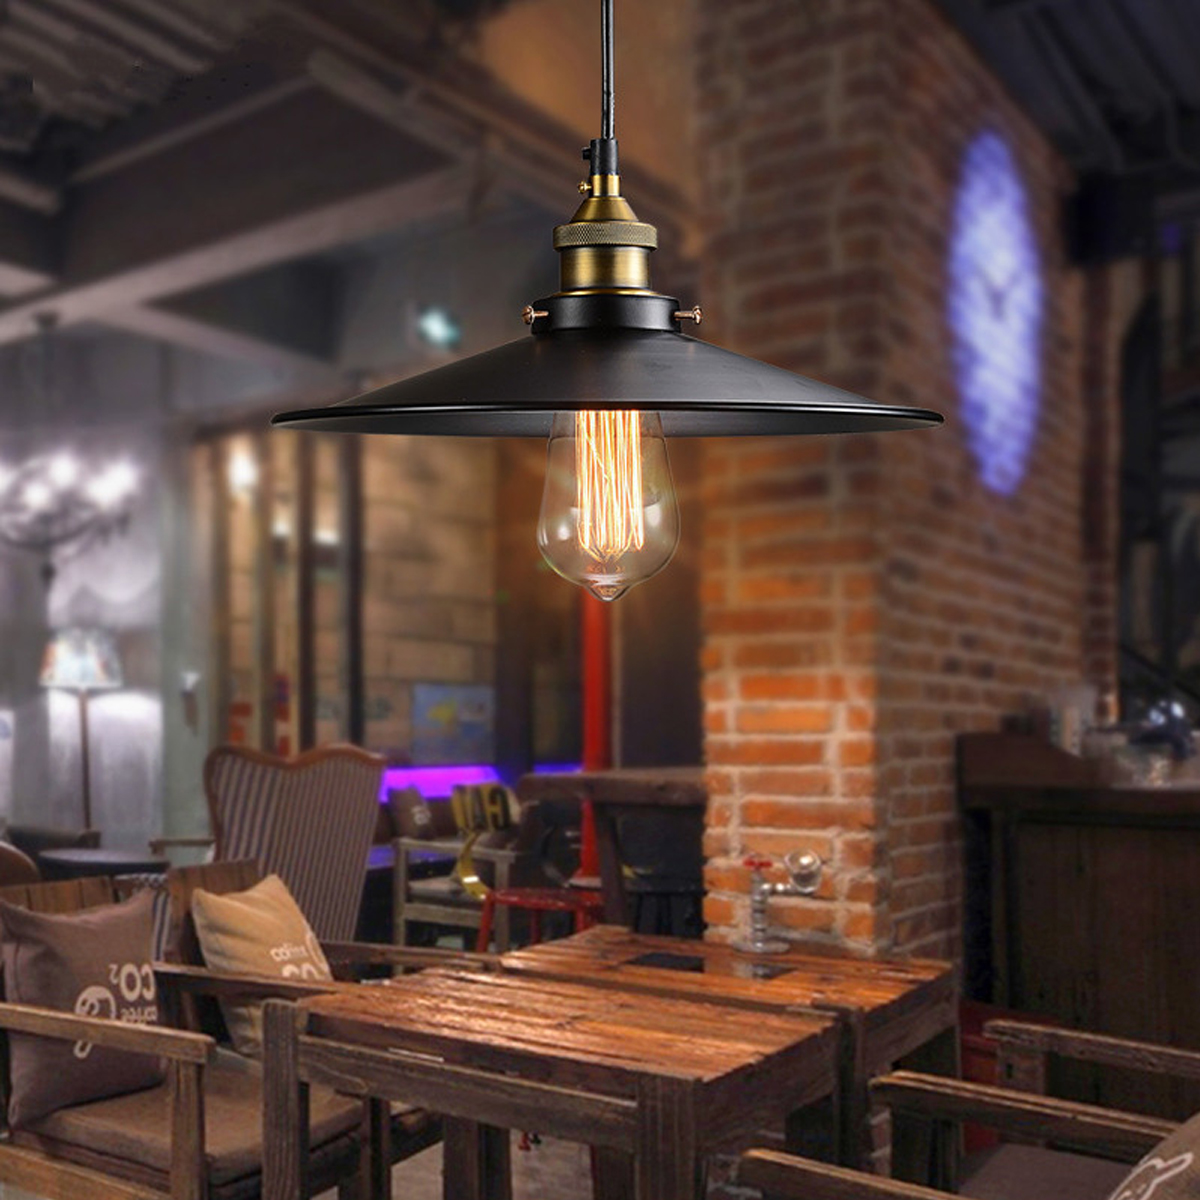 Loft Vintage Ceiling Lamp Retro Industrial Chandelier Fixture For Cafe Restaurant Bar American Style Metal Light colorful glass bowknot led corridor loft bedroom bar ceiling light lamp droplight cafe bar hall store restaurant decor